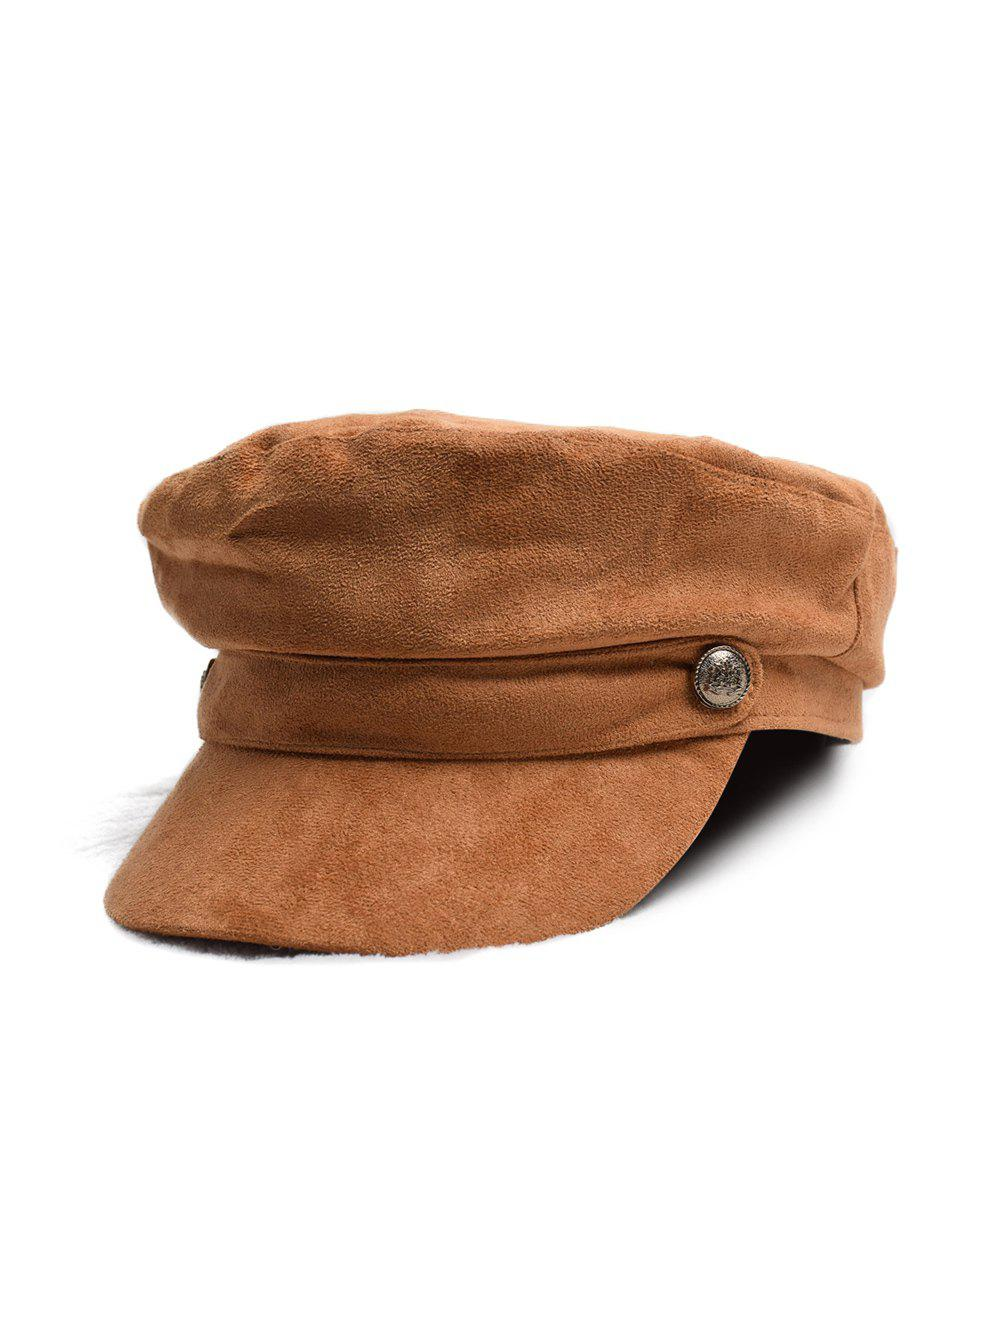 Cheap British Style Solid Suede Casual Cap